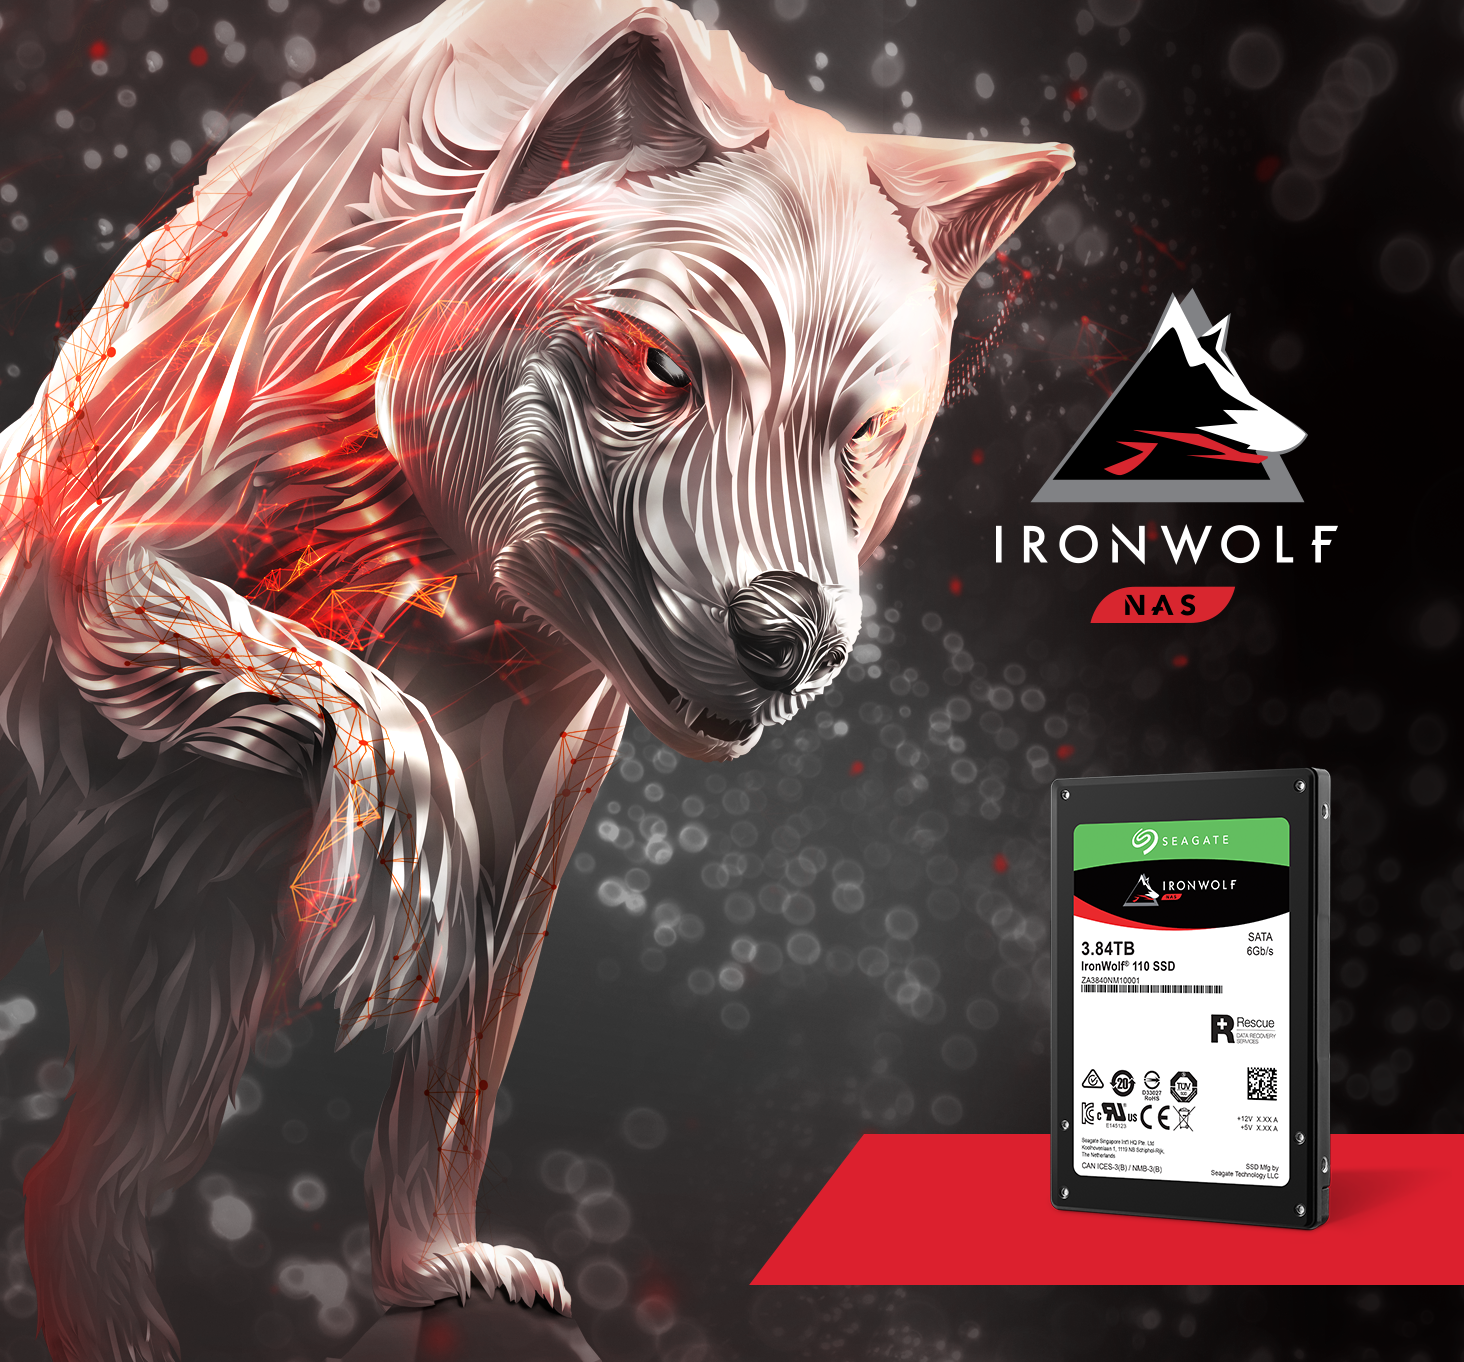 Seagate Ironwolf 110 SSD next to a stylized wolf and the IronWolf NAS logo